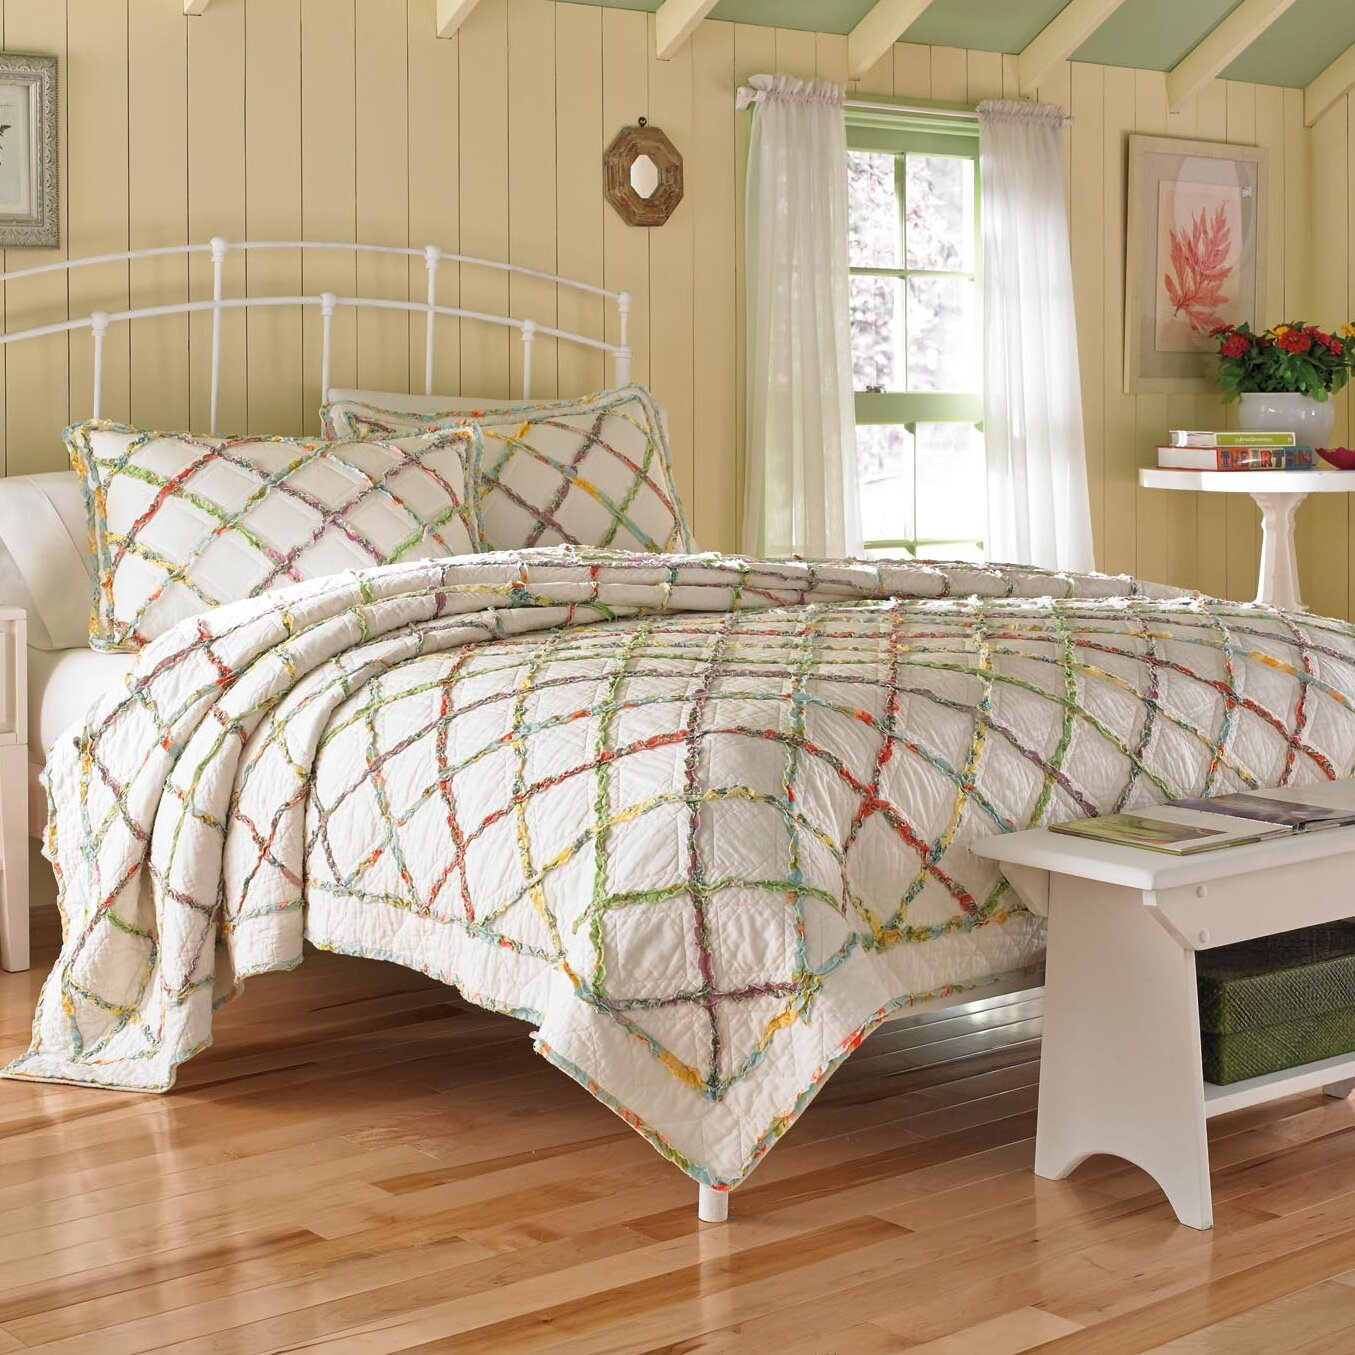 laura ashley home ruffled garden reversible quilt reviews wayfair. Black Bedroom Furniture Sets. Home Design Ideas